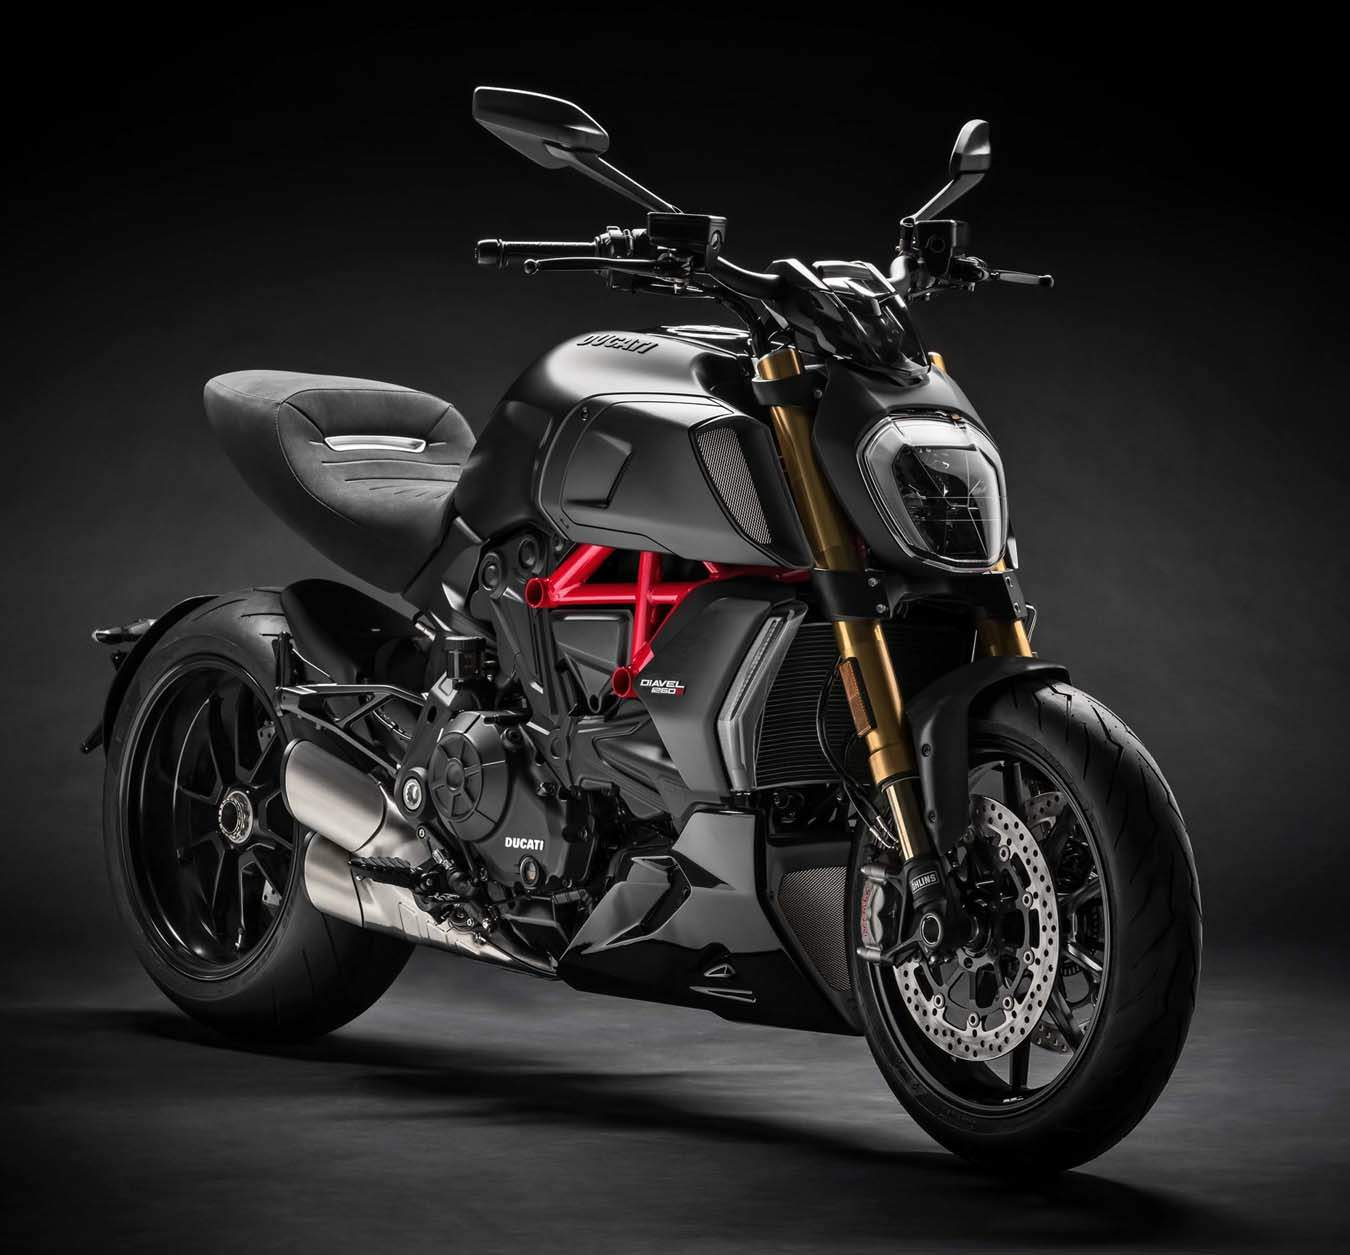 Ducati For Sale Specifications, Price and Images